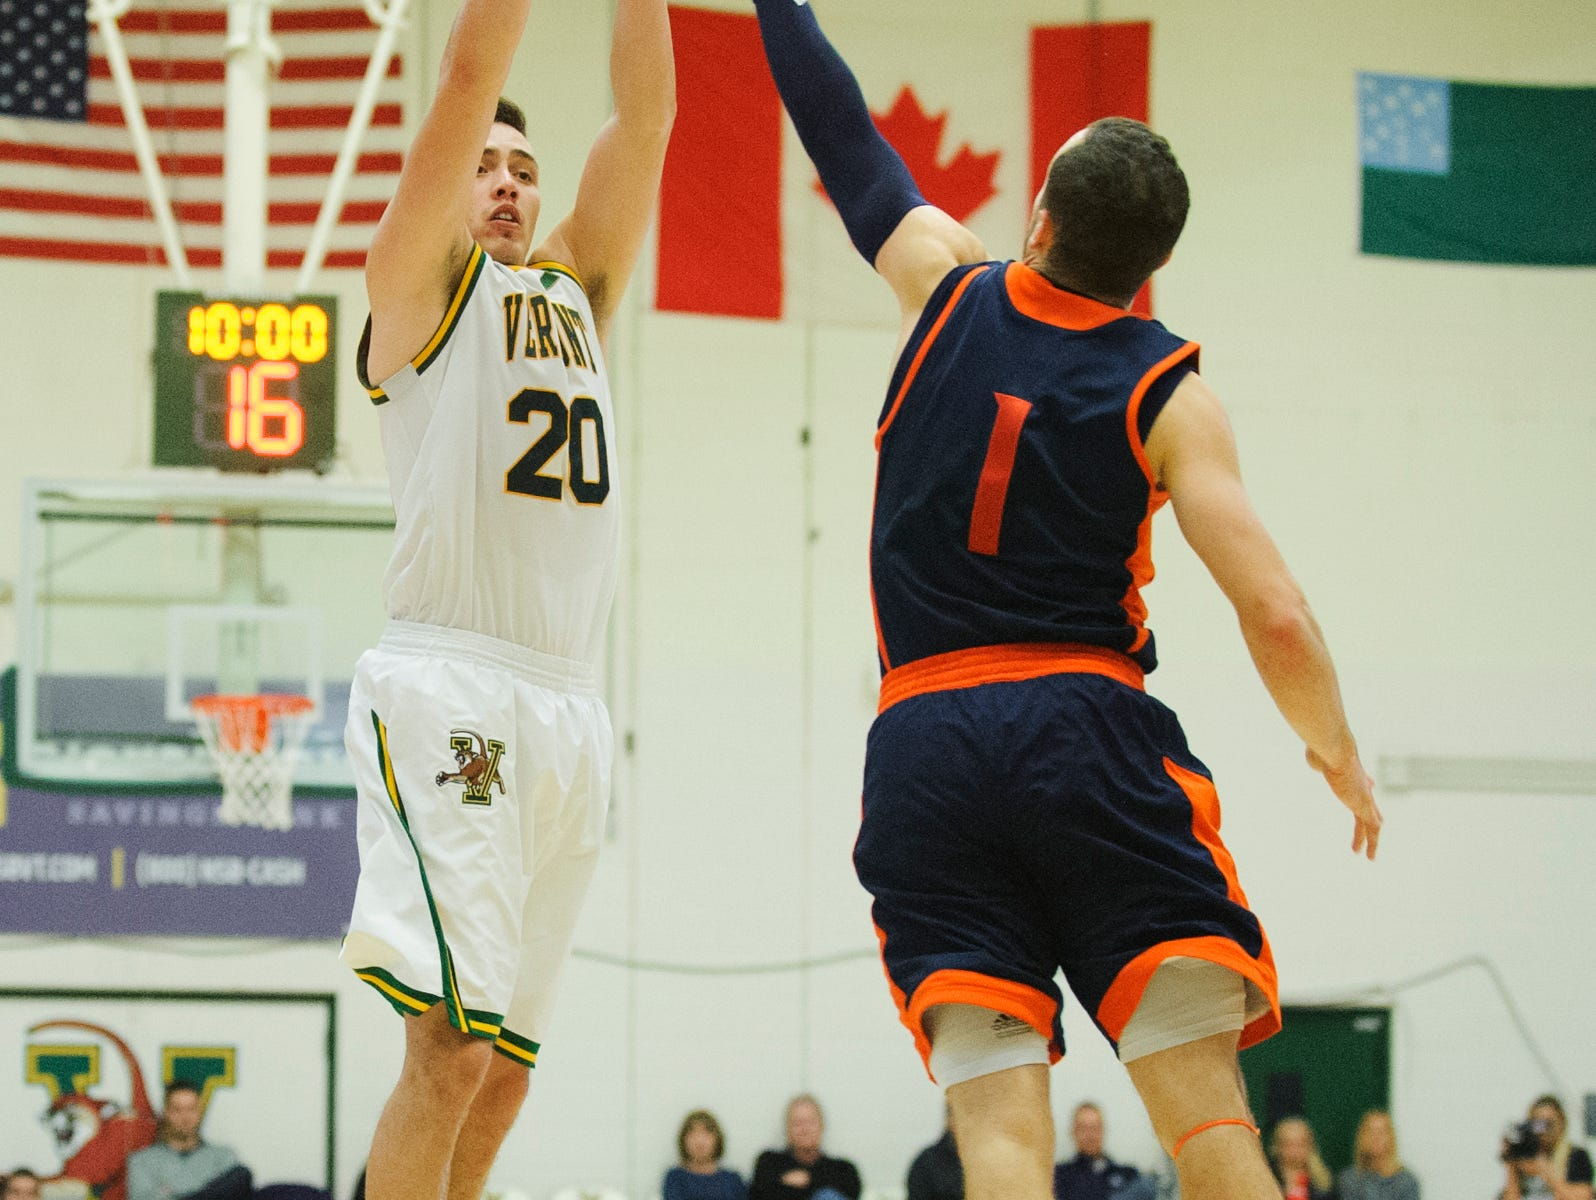 Vermont guard Ernie Duncan (20) shoots a three pointer over Bucknell's Kimbal Mackenzie (1) during the men's basketball game between the Bucknell Bison and the Vermont Catamounts at Patrick Gym on Sunday afternoon November 25, 2018 in Burlington.